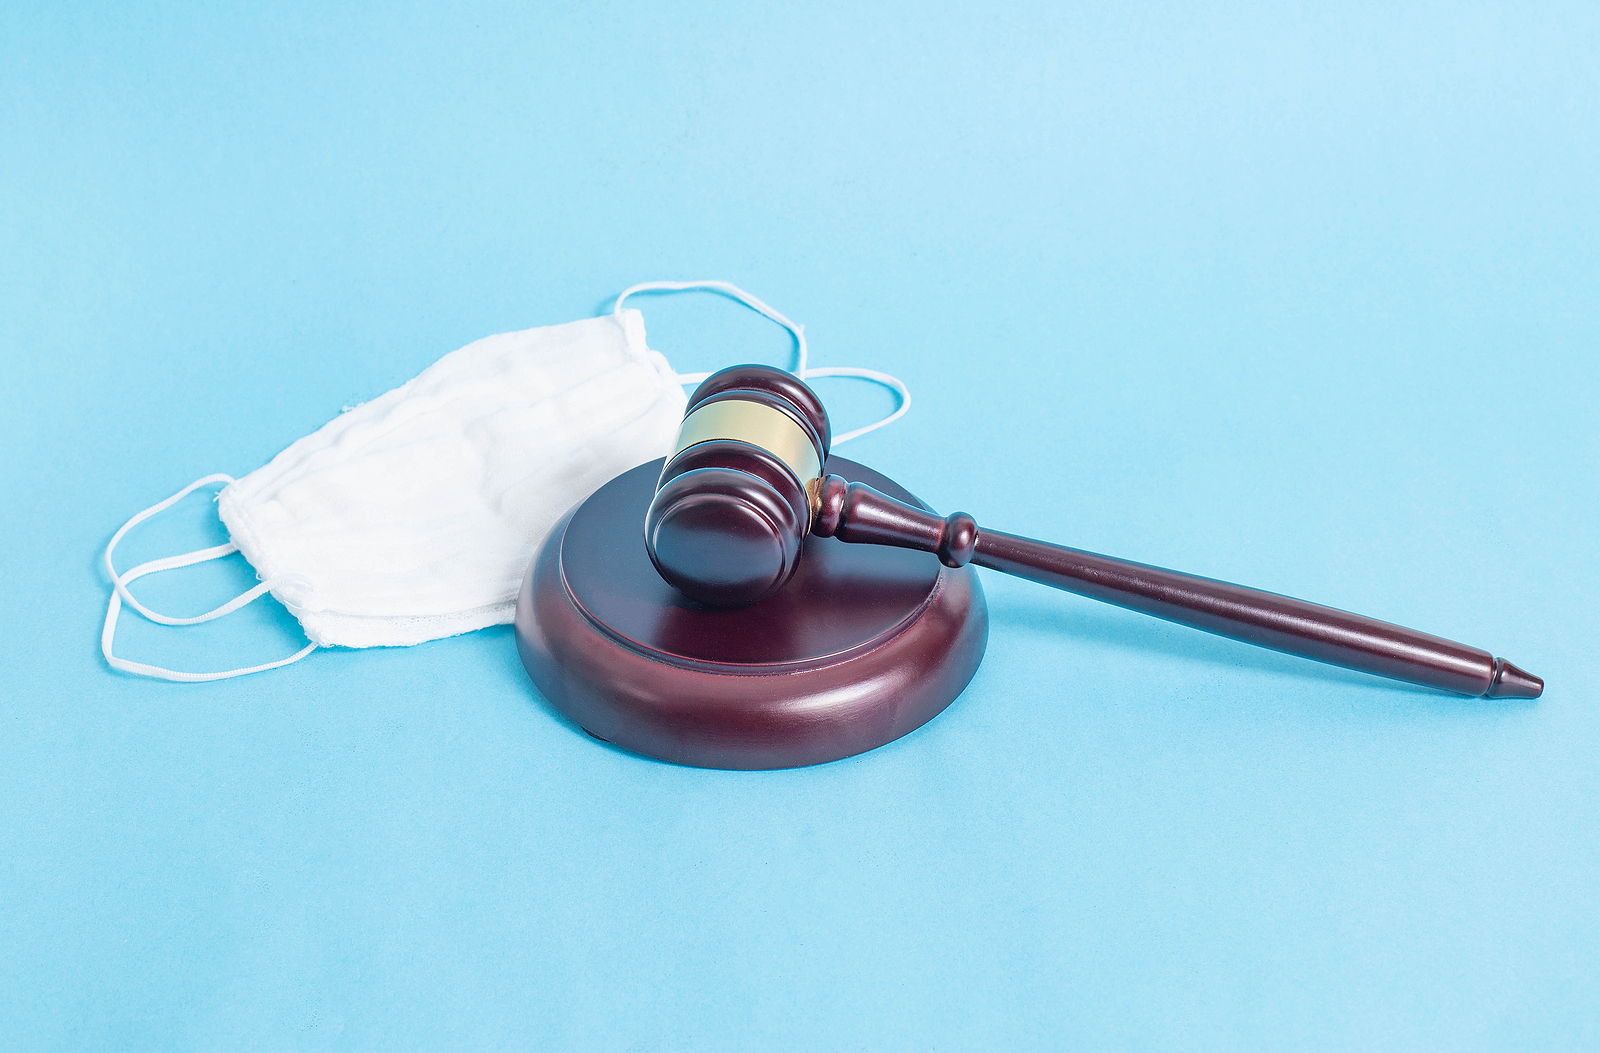 Judicial Gavel And Protective Medical Mask On A Blue Background.